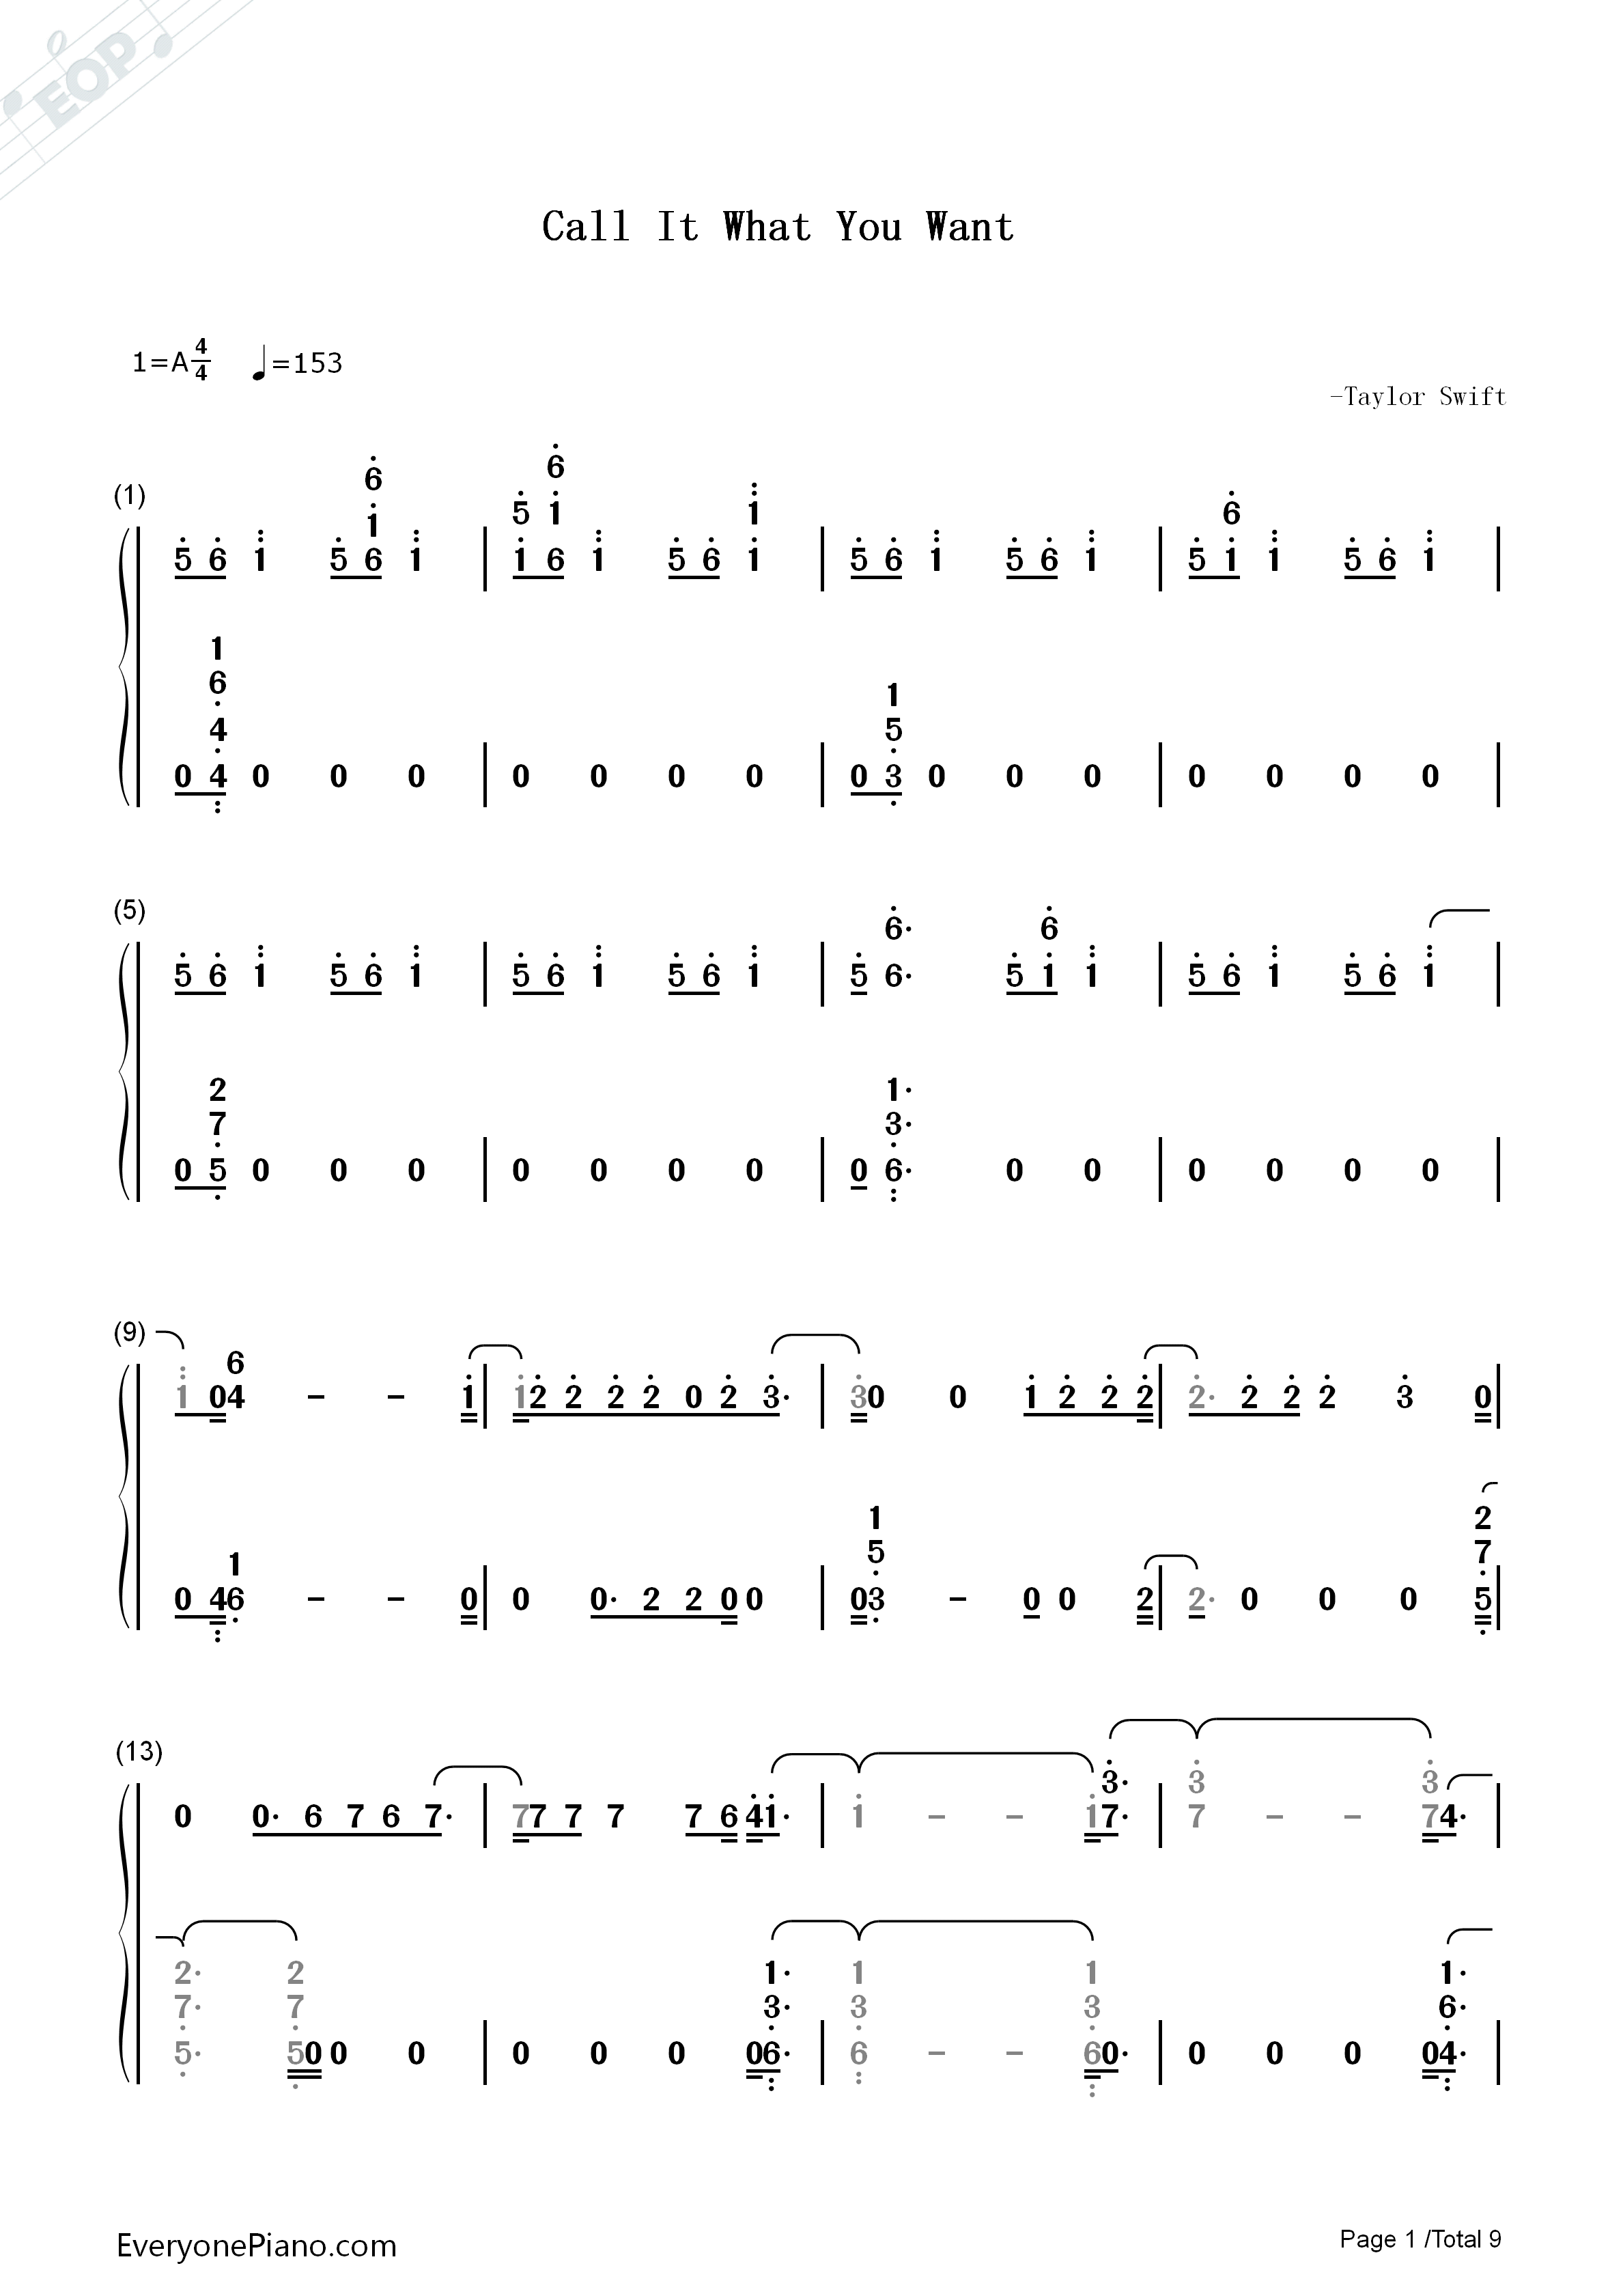 Call It What You Want Taylor Swift Numbered Musical Notation Preview